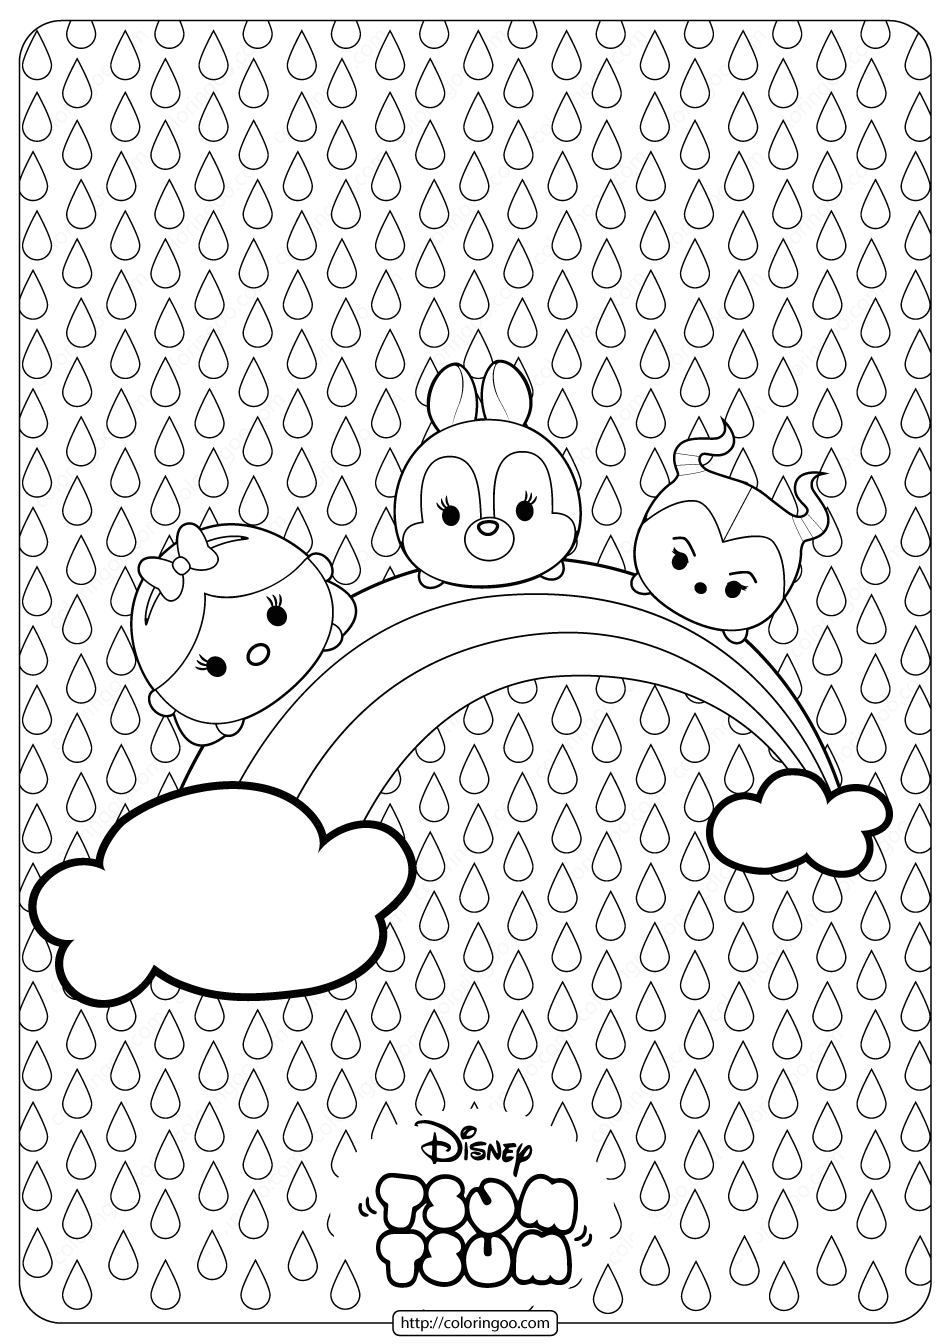 Disney Tsum Tsum Rainbow Coloring Pages